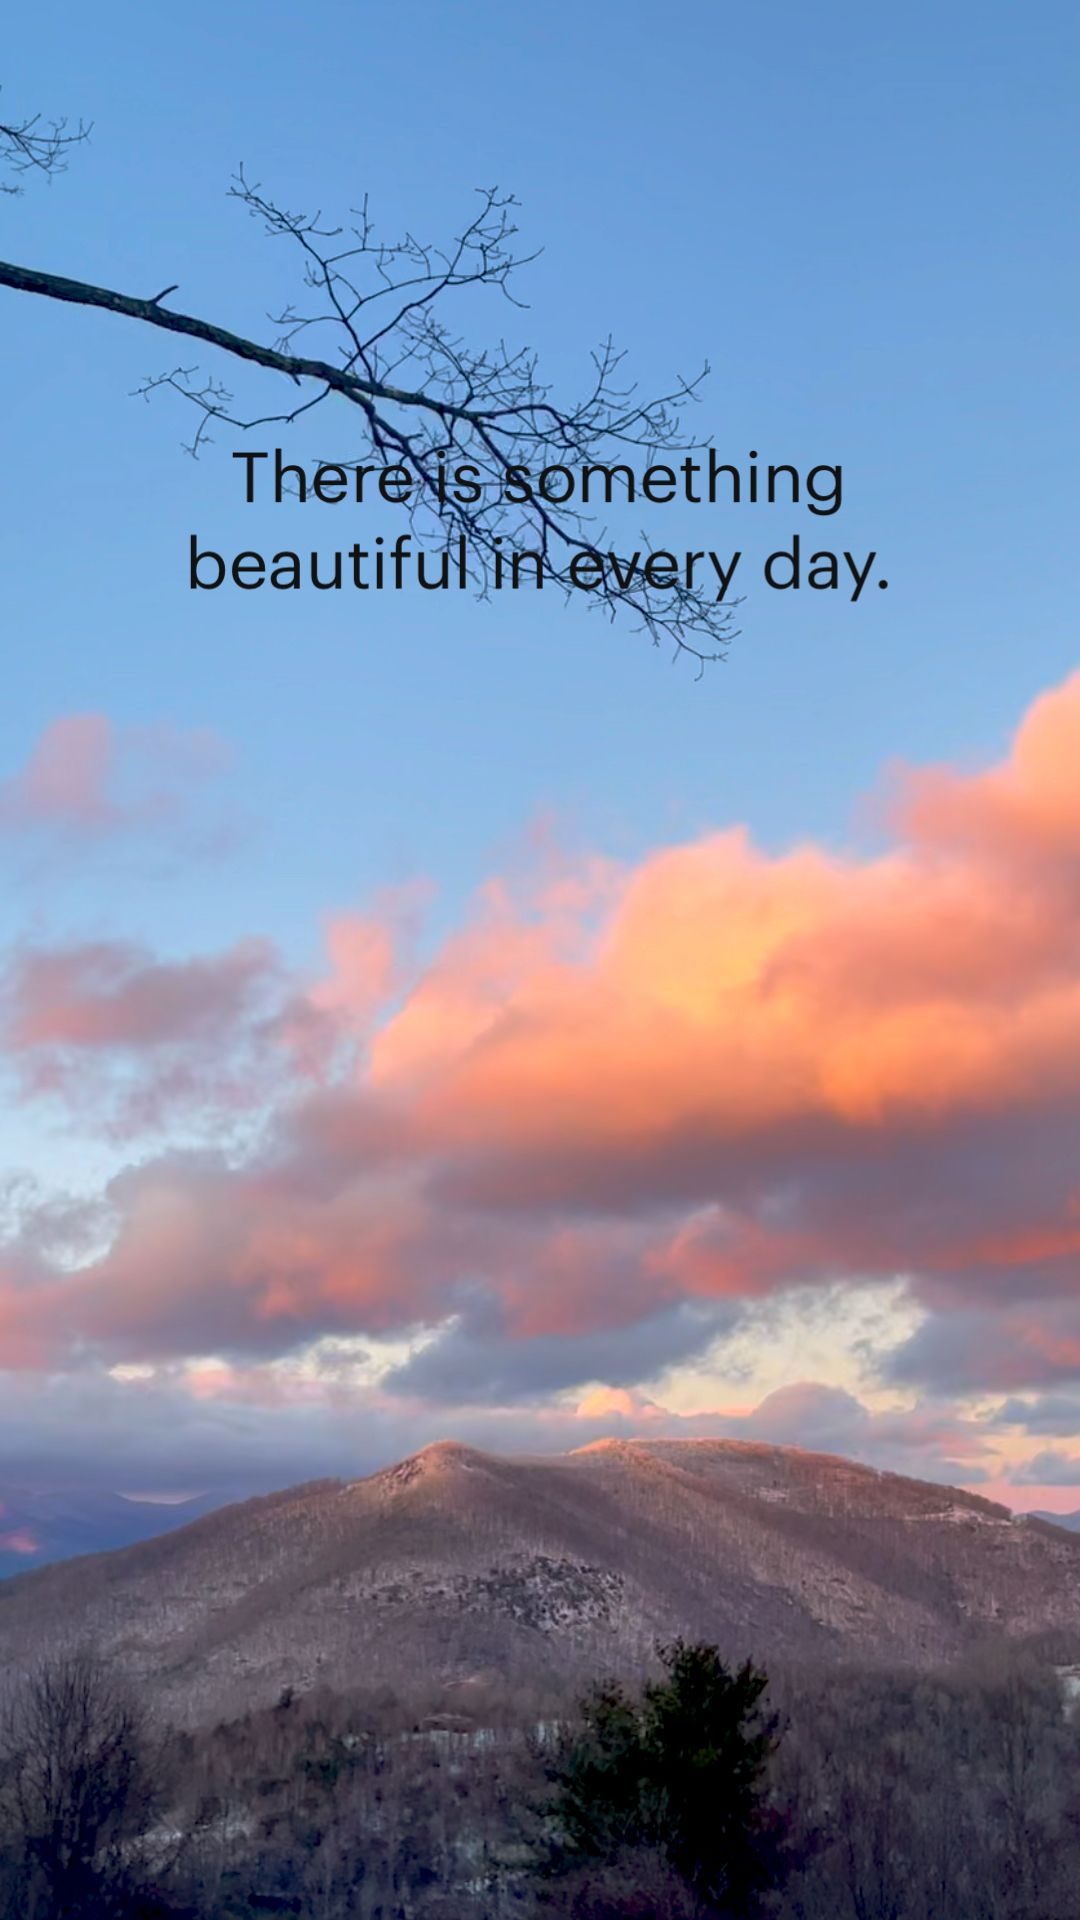 There is something  beautiful in every day.